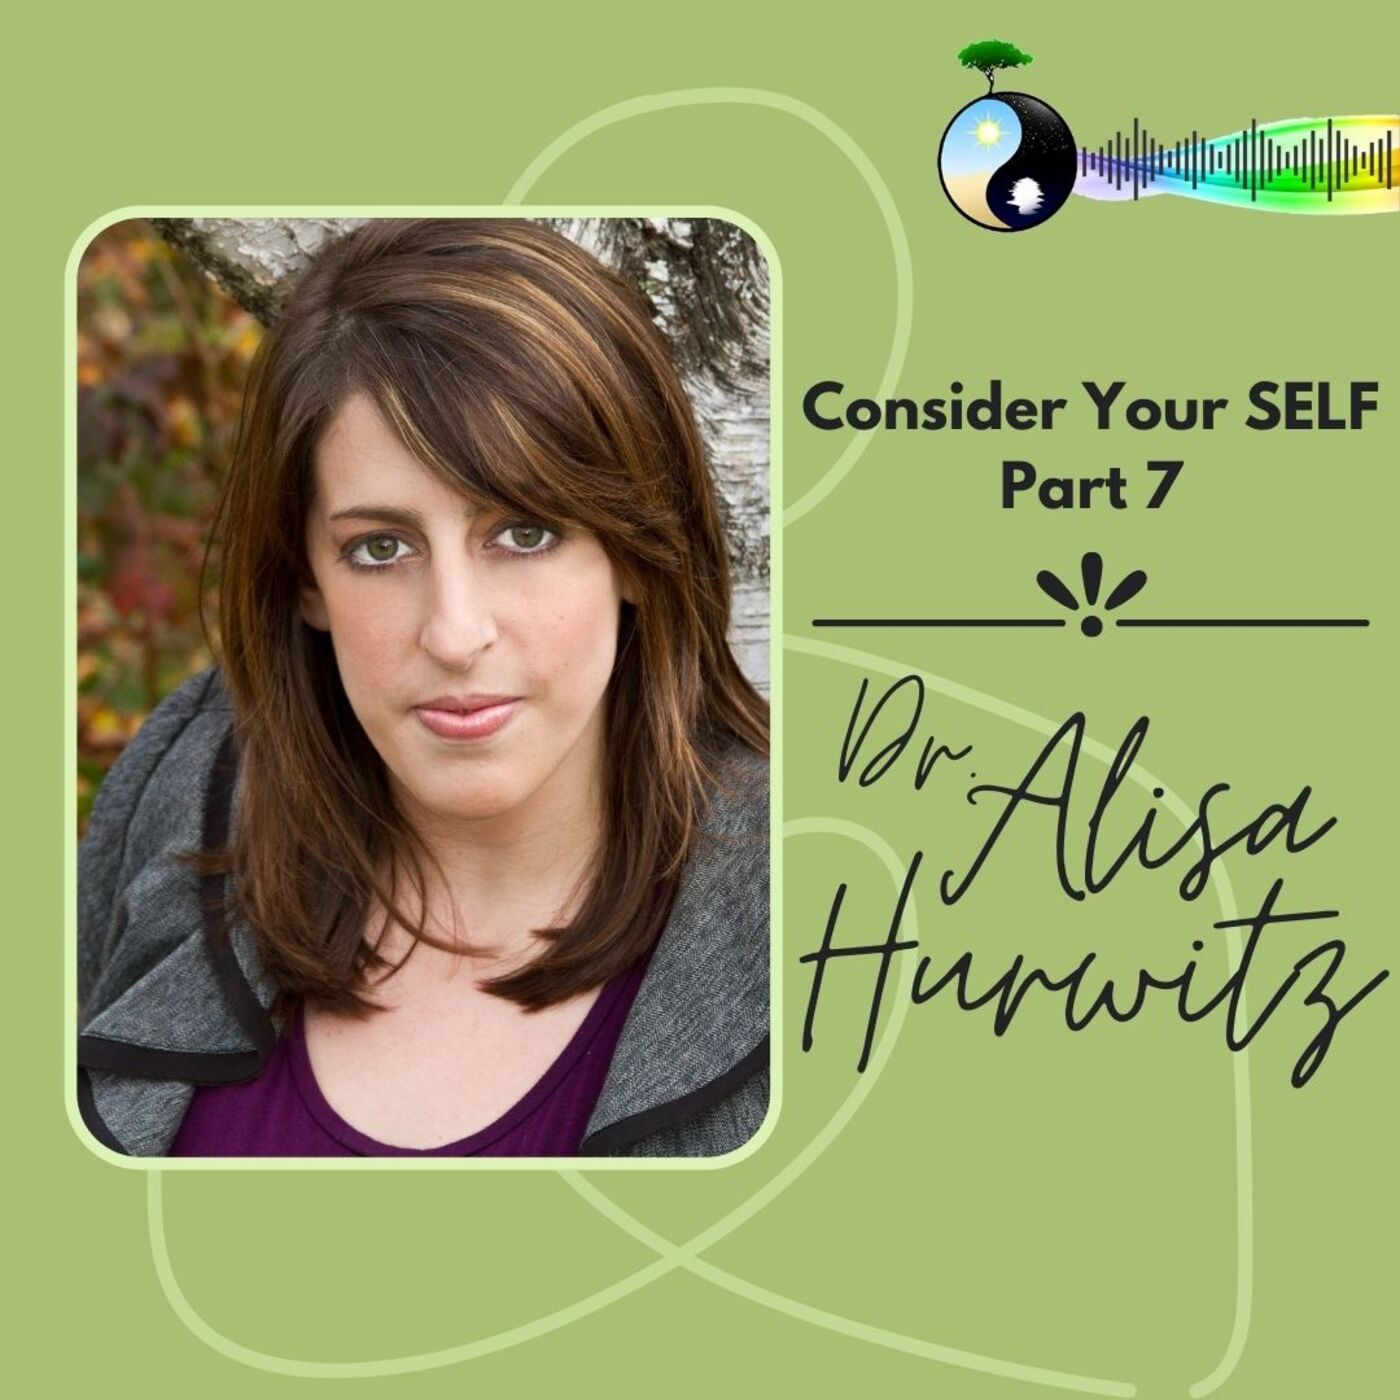 Consider Your SELF with Dr. Alisa Hurwitz, Clinical Psychologist